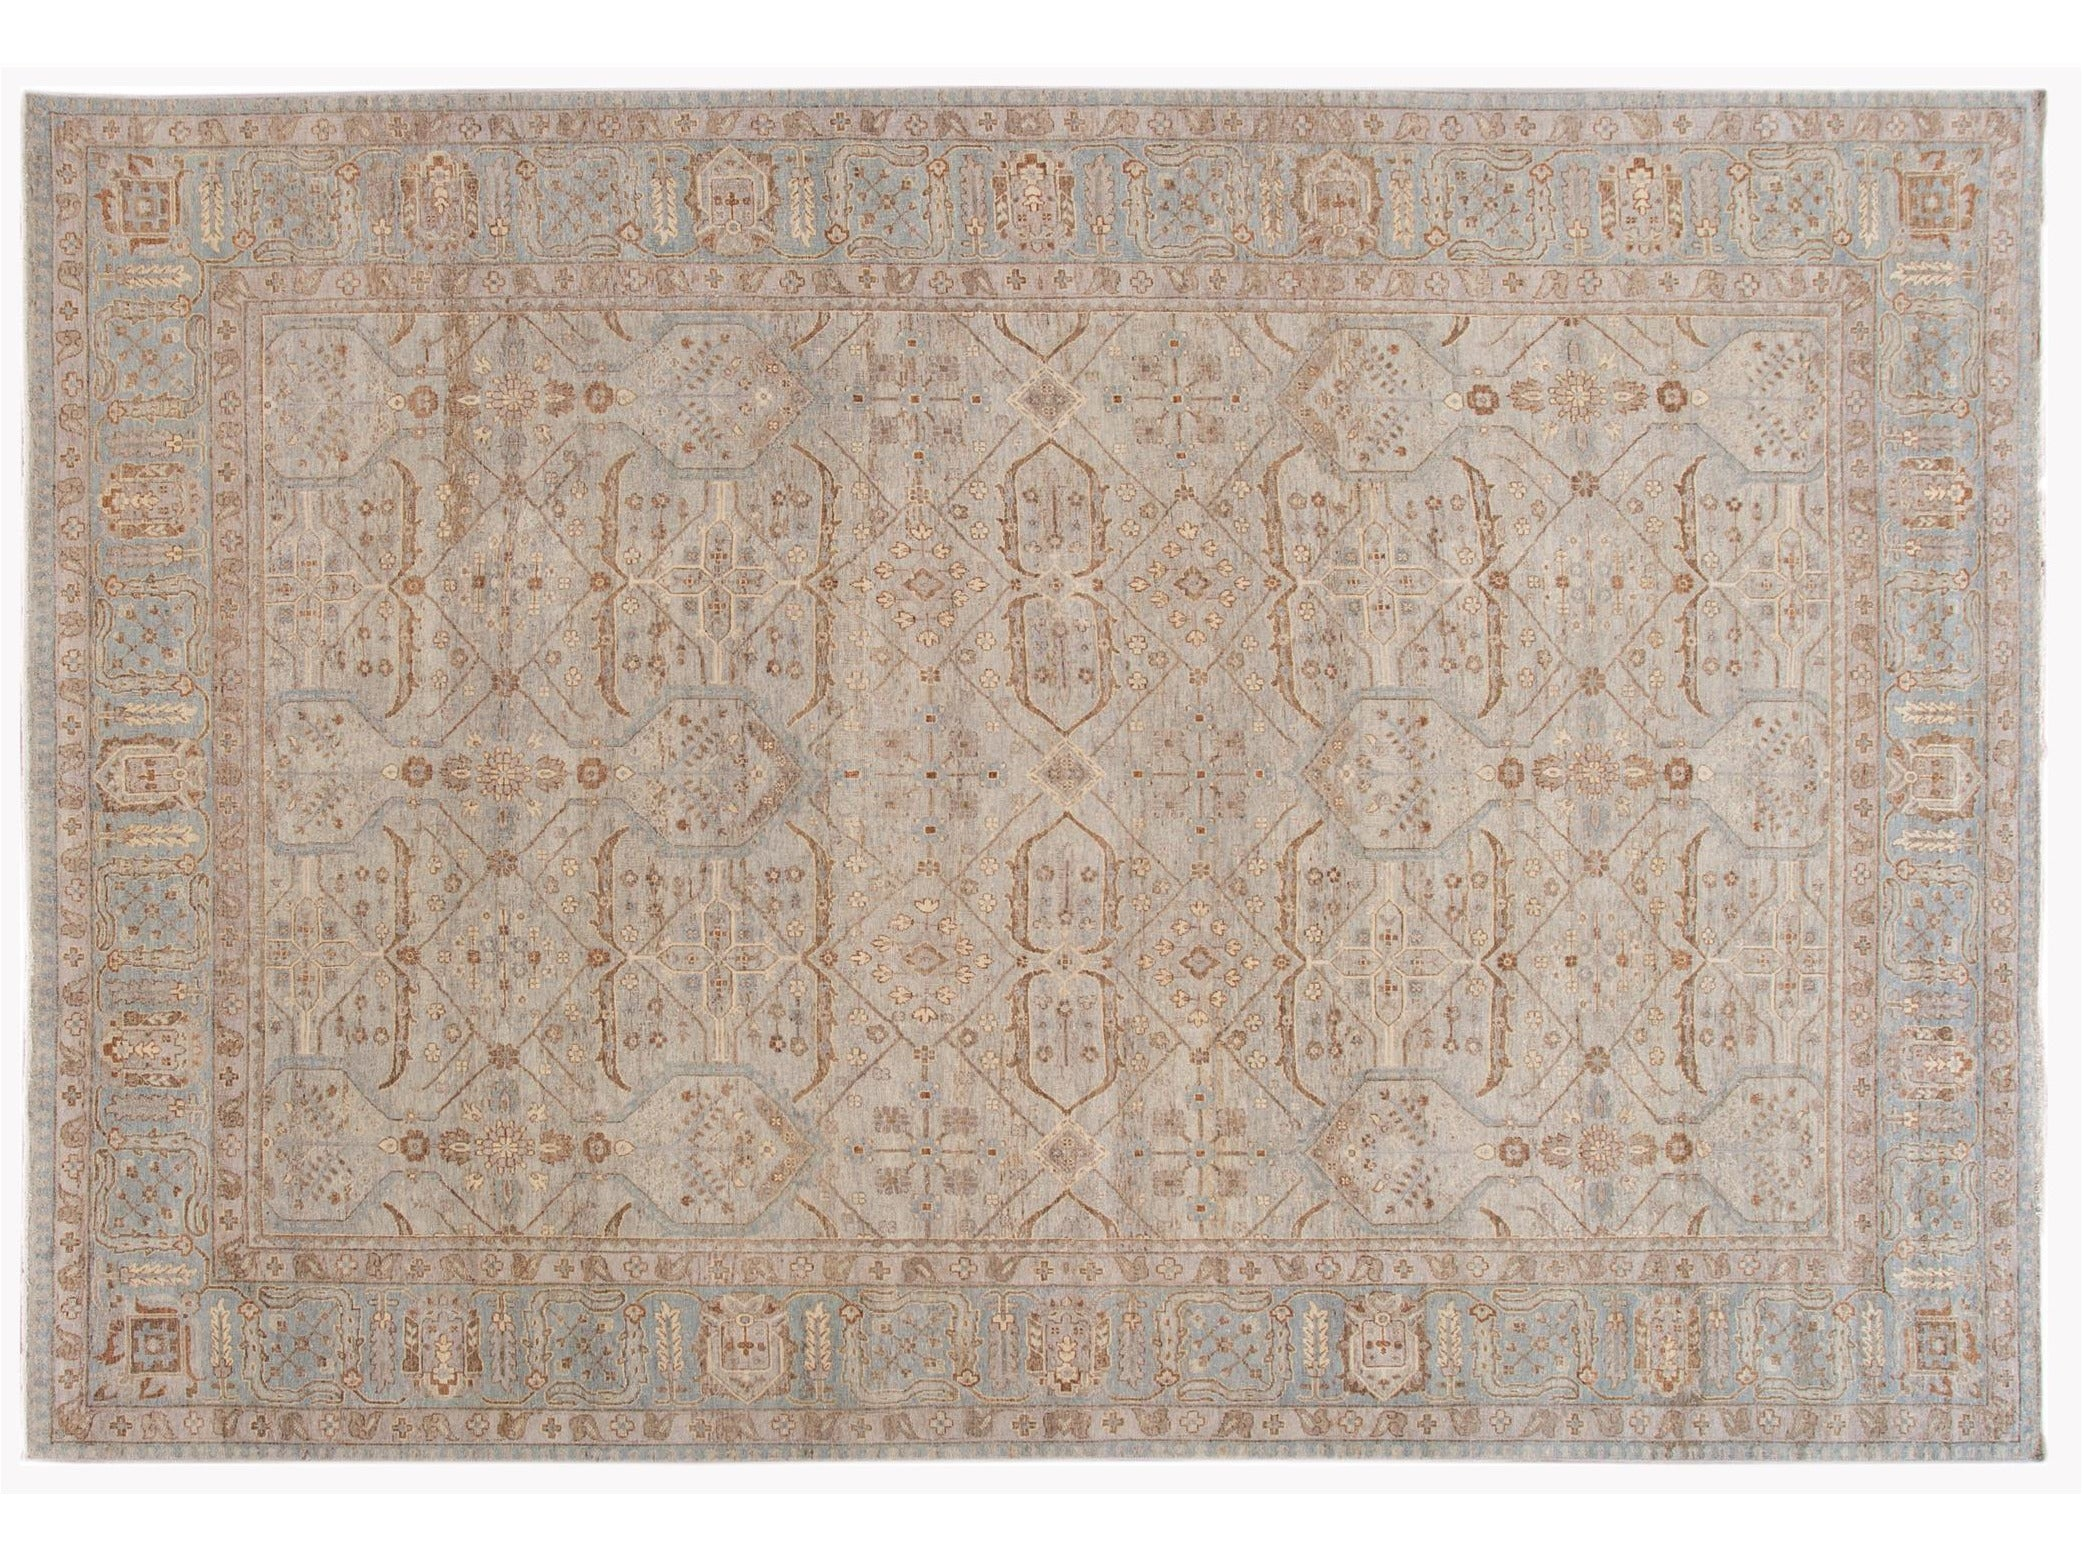 21st Century Contemporary Indian Wool Rug, 10 X 14